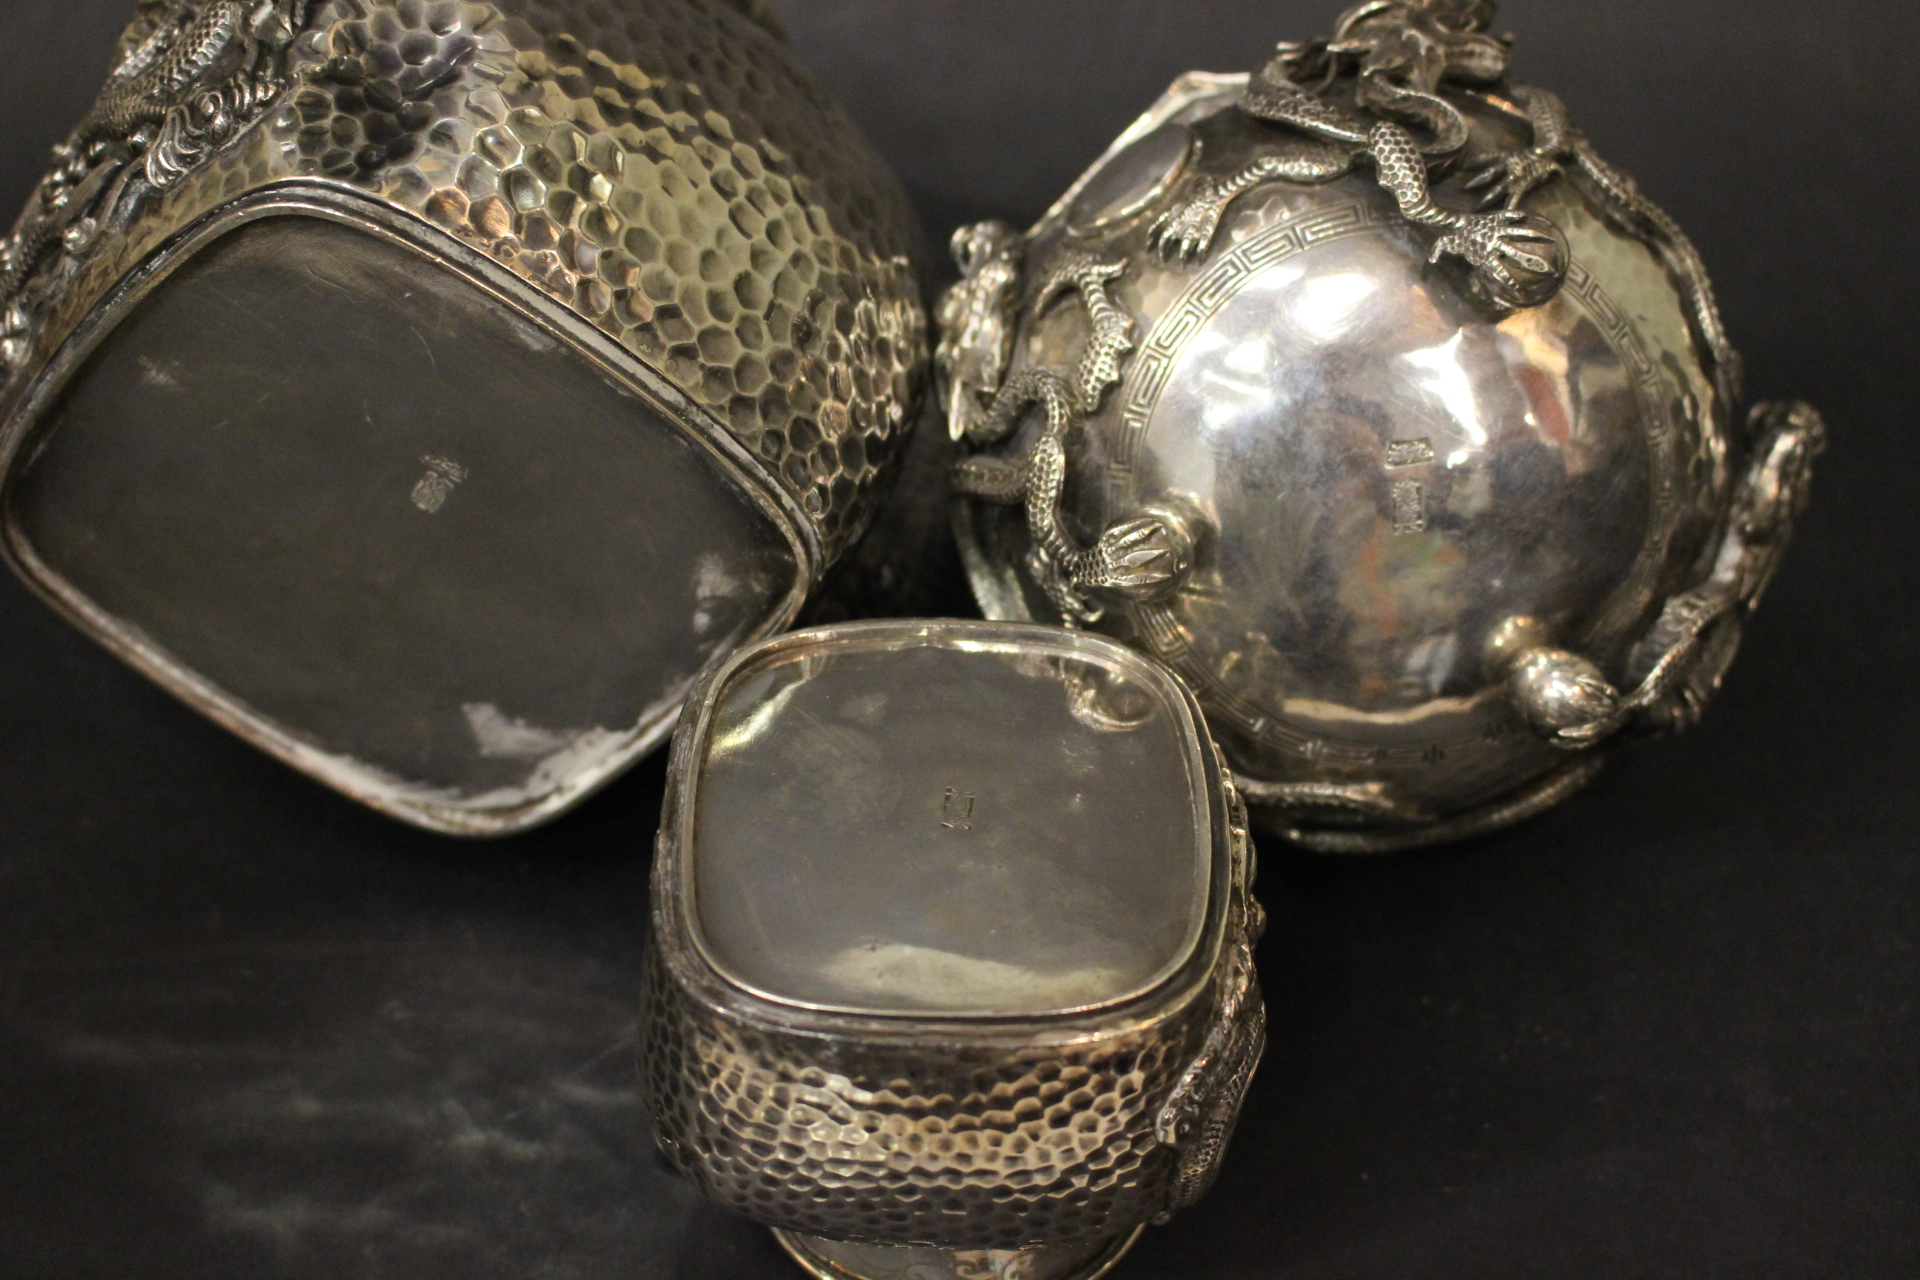 Lot 7 - A LATE 19TH CENTURY/EARLY 20TH CENTURY CHINESE EXPORT SILVER THREE PIECE TEA SET